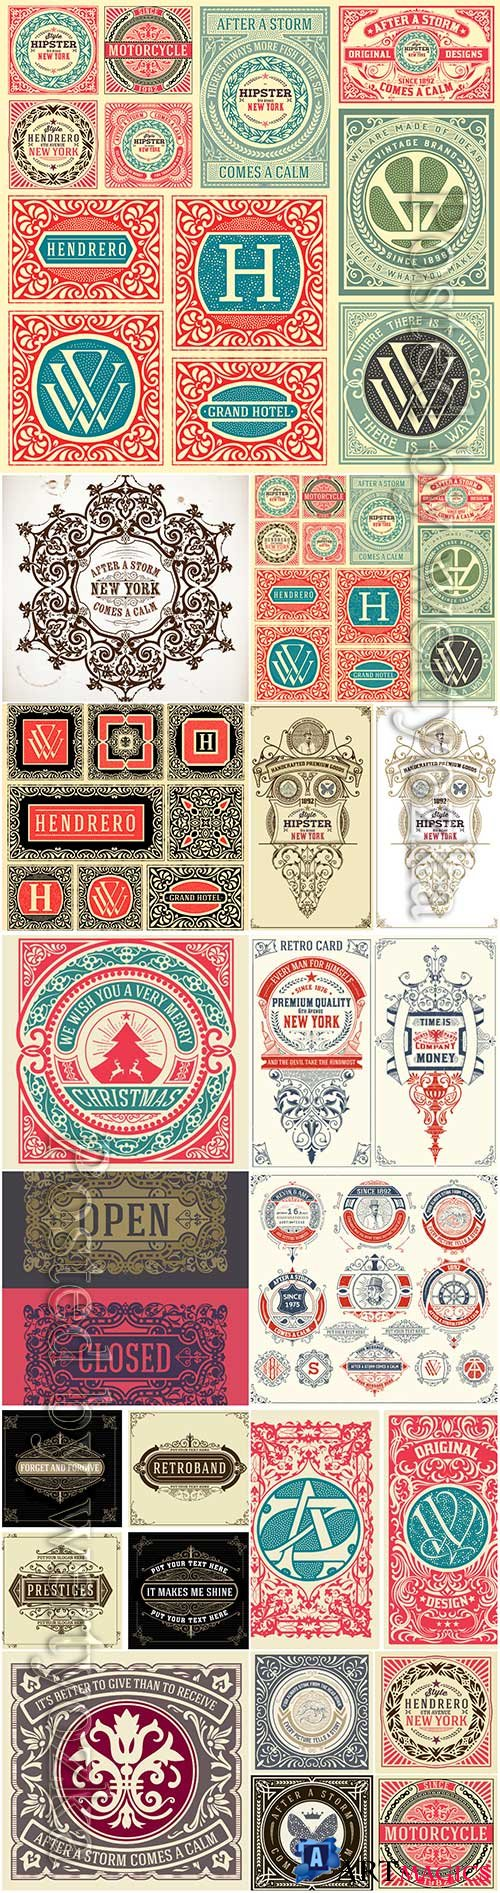 Vector vintage labels, emblems, logos, ribbons, patterns # 2